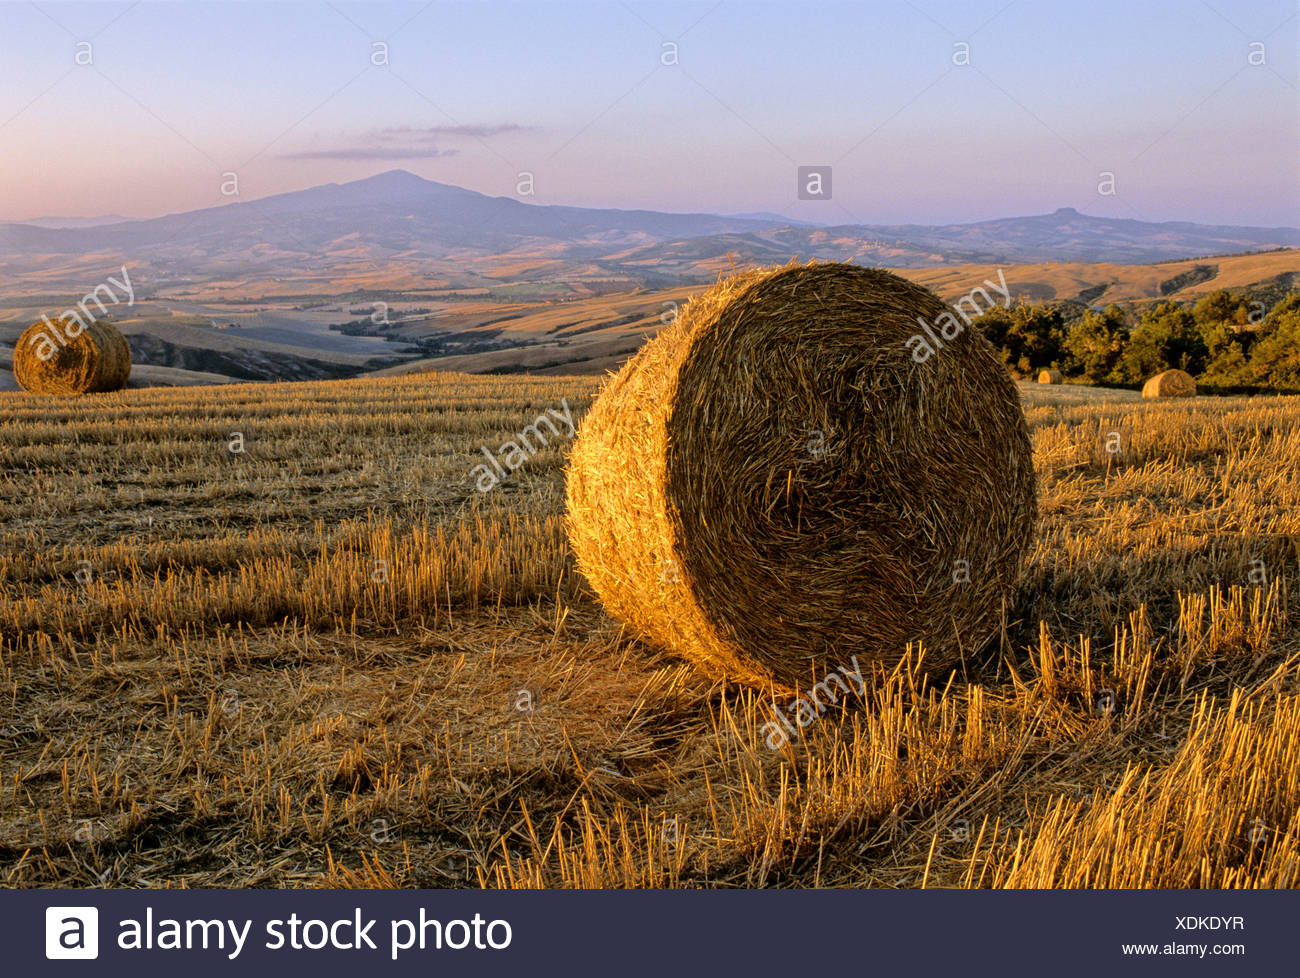 Bale of straw, harvested wheatfields, landscape around Radicofani and Monte Amiata at sunset, Val d' Orcia near Monticchiello,  - Stock Image